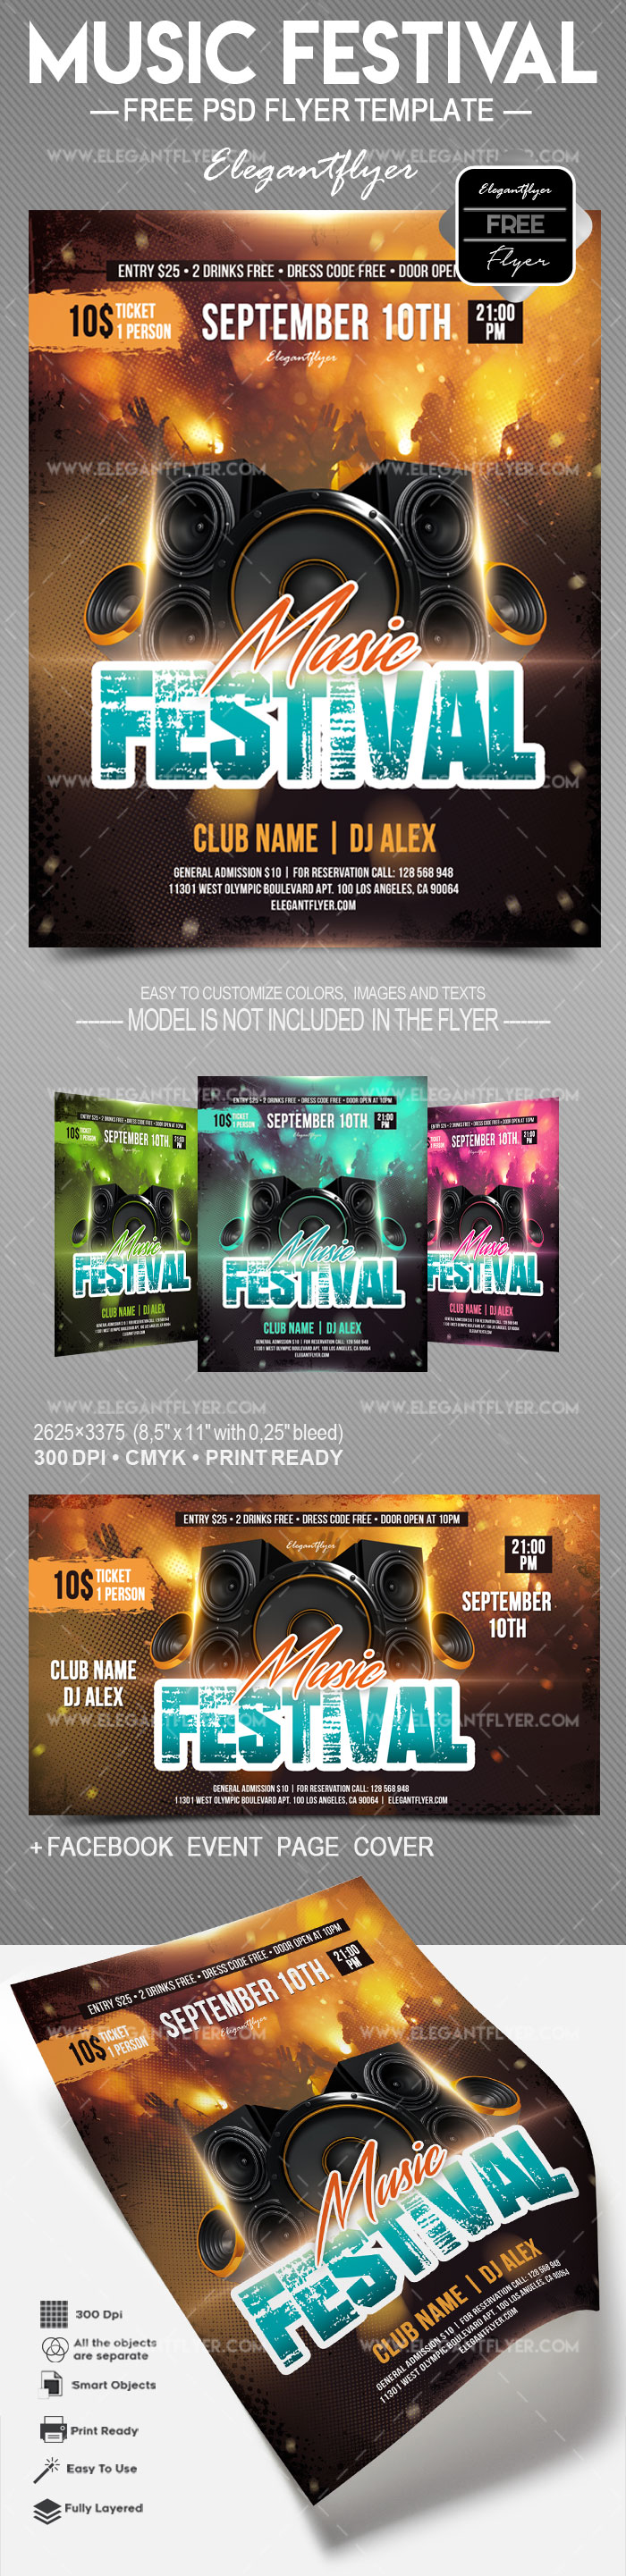 Music Festival – Free Flyer PSD Template